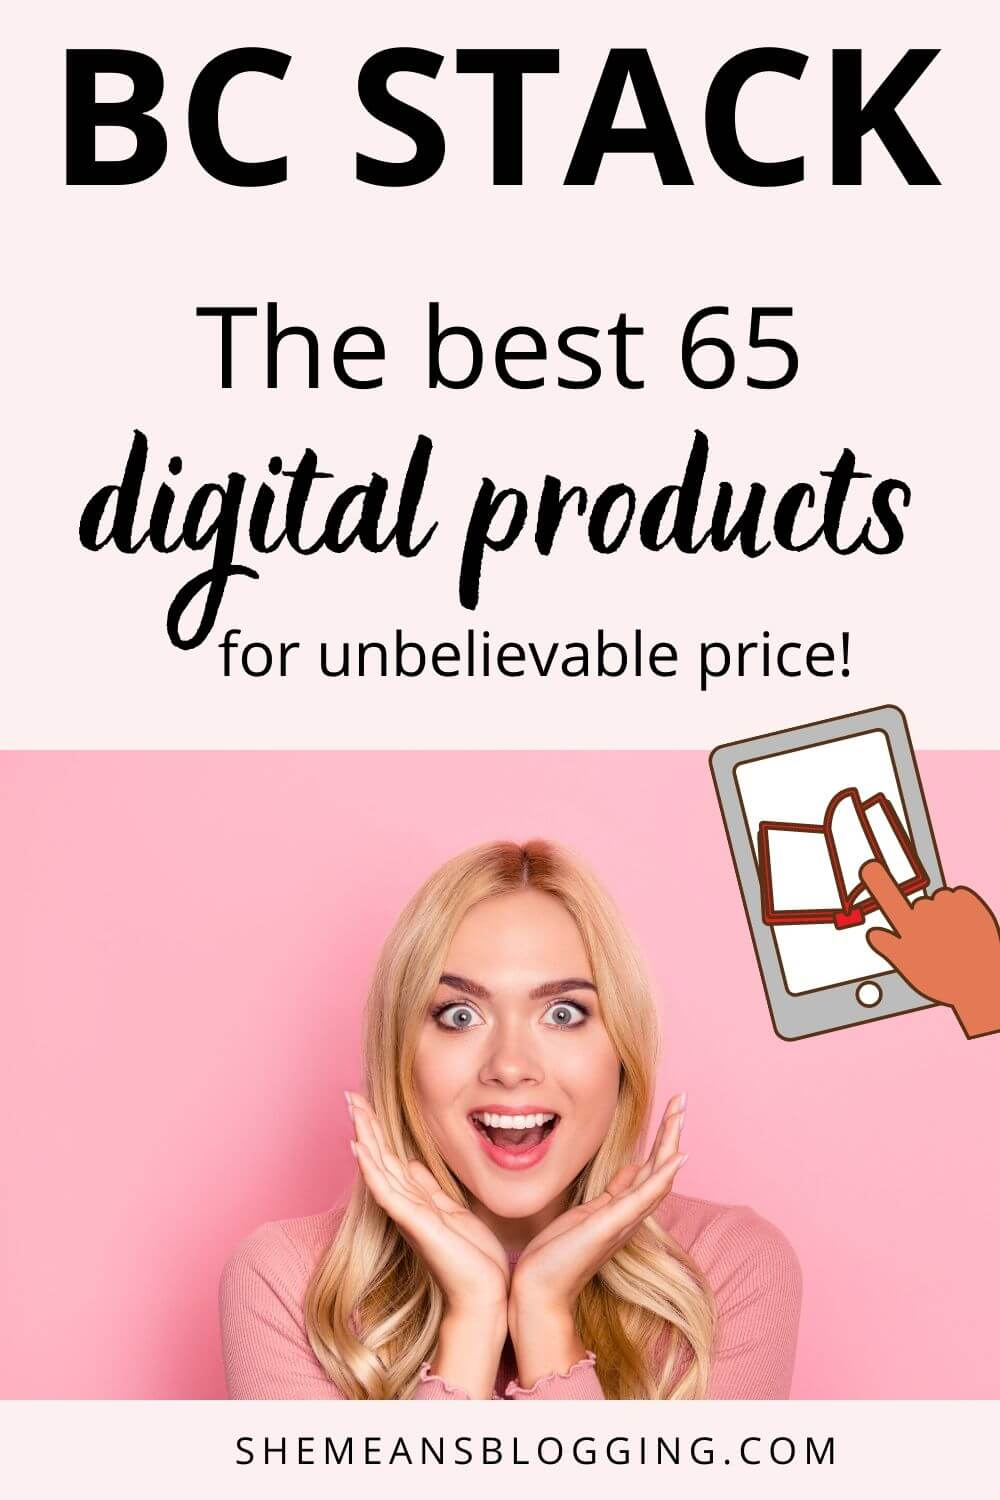 BC stack is here! Get 65+ digital products from best entrepreneurs, bloggers and business owners. Learn SEO, social media, email marketing, pinterest, podcasting, make money blogging, wordpress etc. Get the whole bundle for unbelievable price! Check out here #bloggingforbeginners #entrepreneurs #makemoneyblogging #onlinebusiness